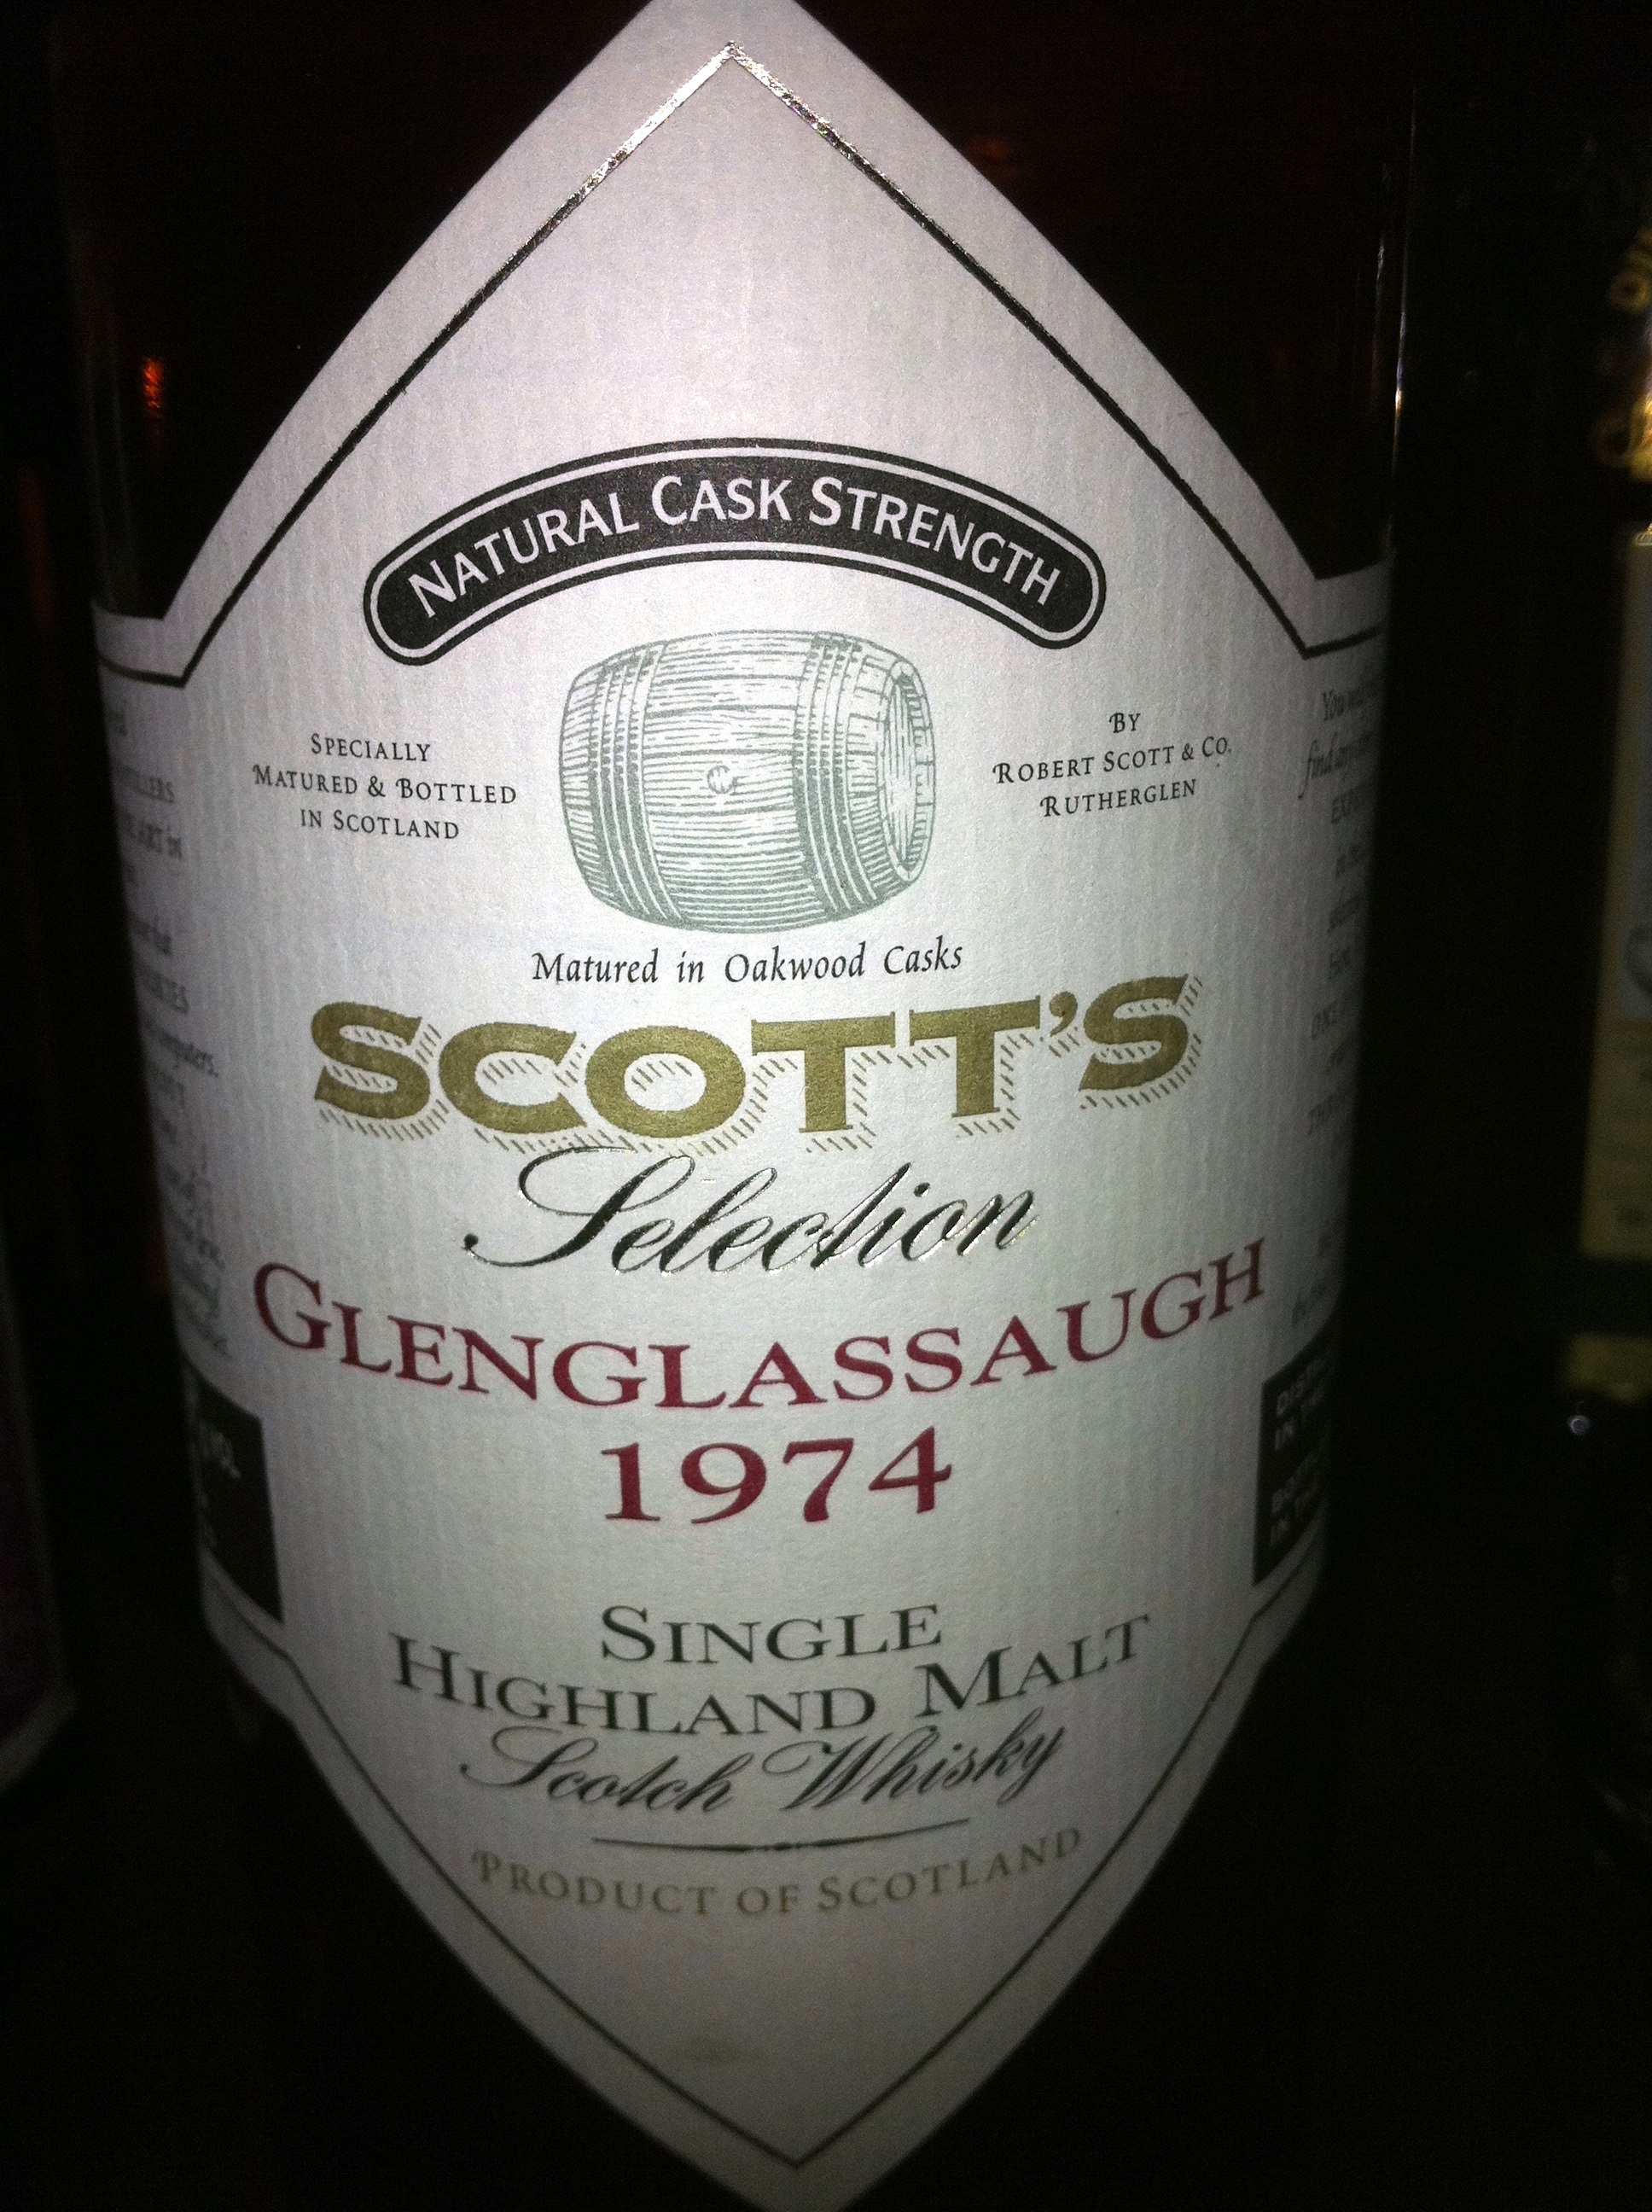 グレングラッソー Glenglassaugh 1974/1998 (55.9%,  Scott's, natural cask strength, 70cl) 日本向け